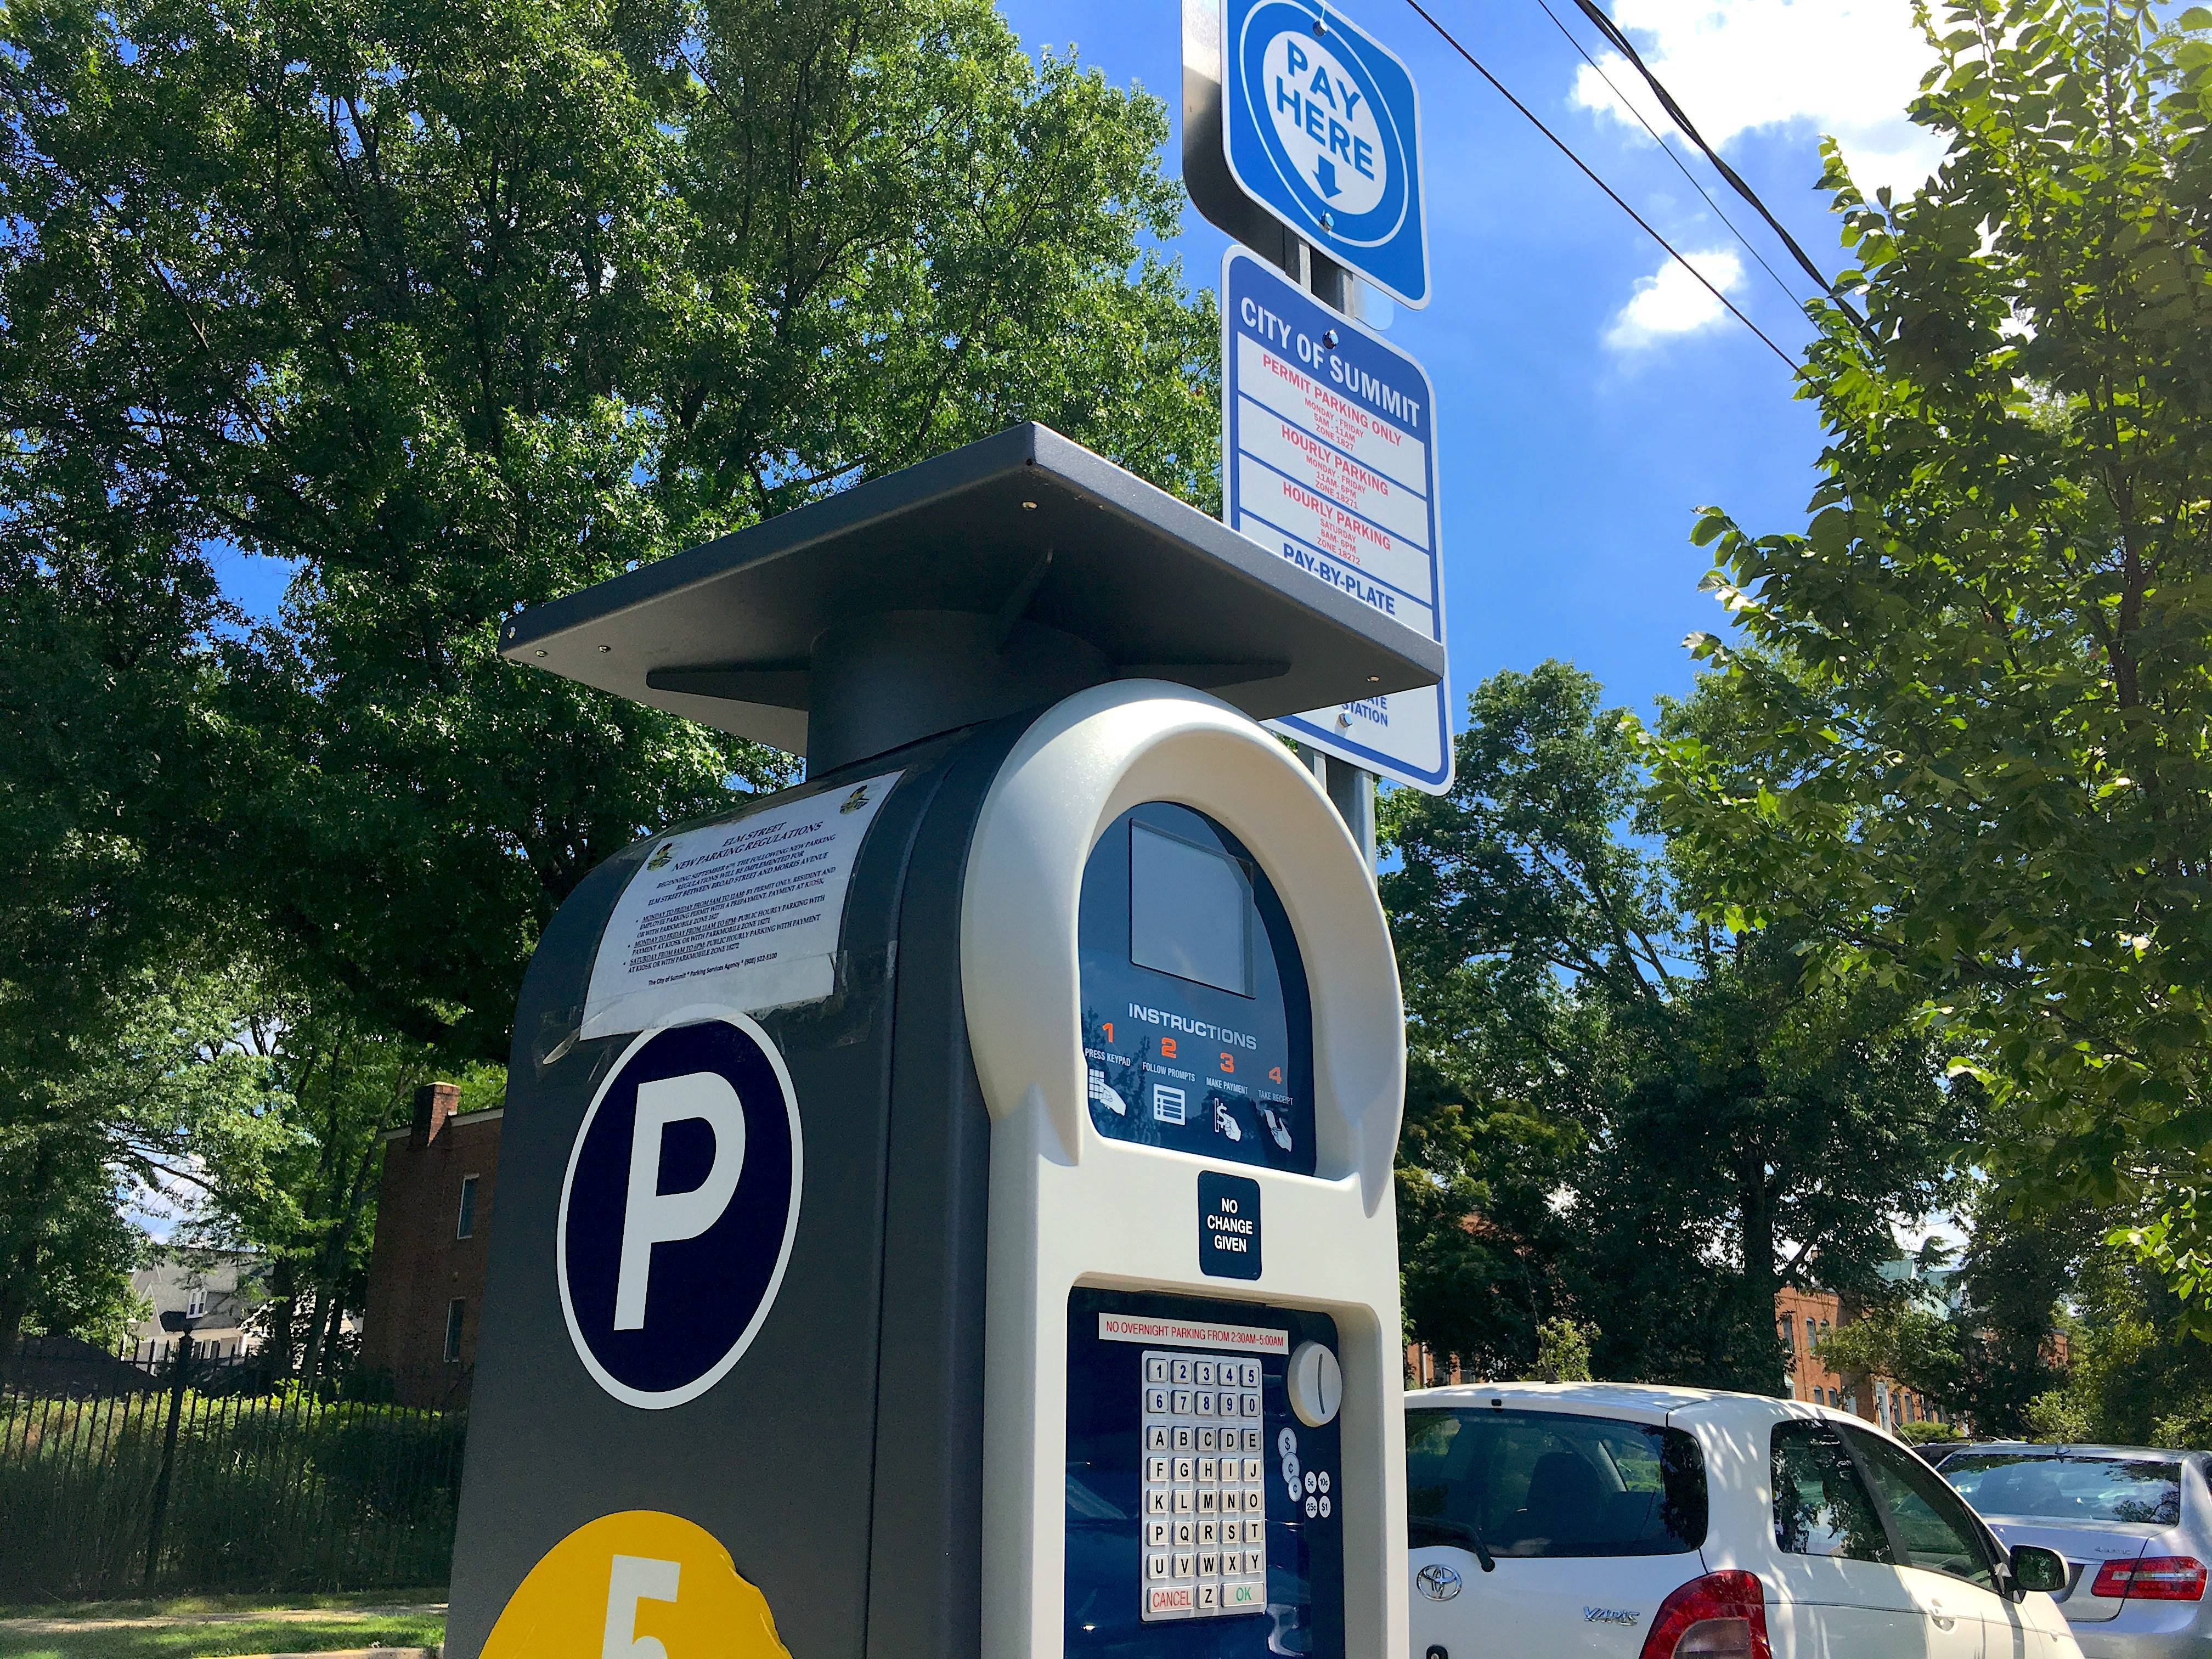 City of Summit Deploys Additional Parking Kiosks at Multiple Downtown, Adjacent Locations